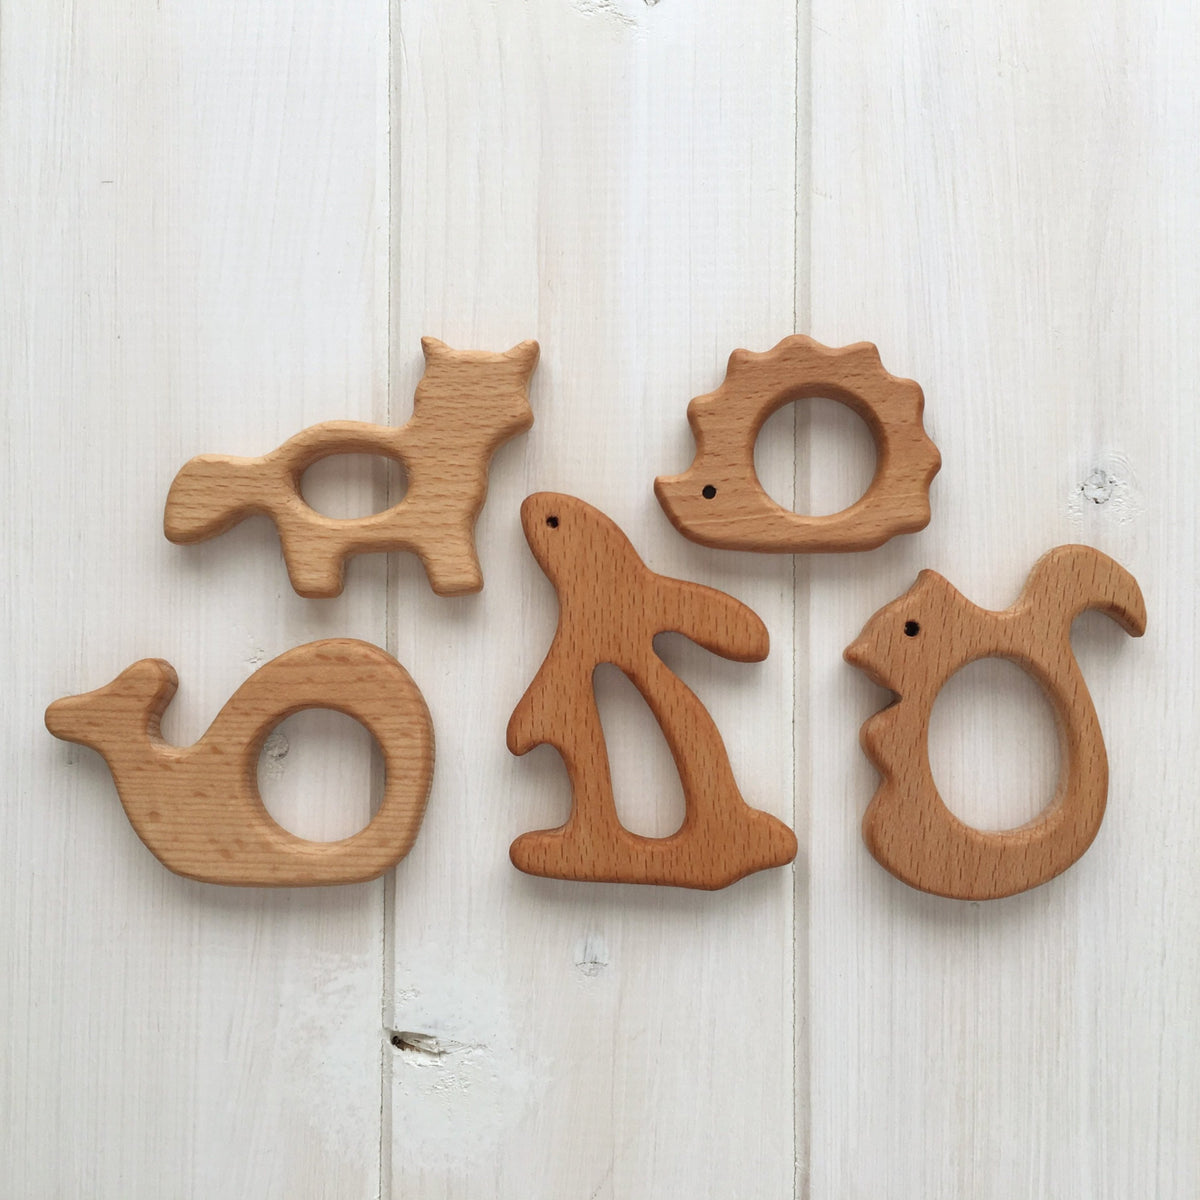 Wood Animal Teething Accessory